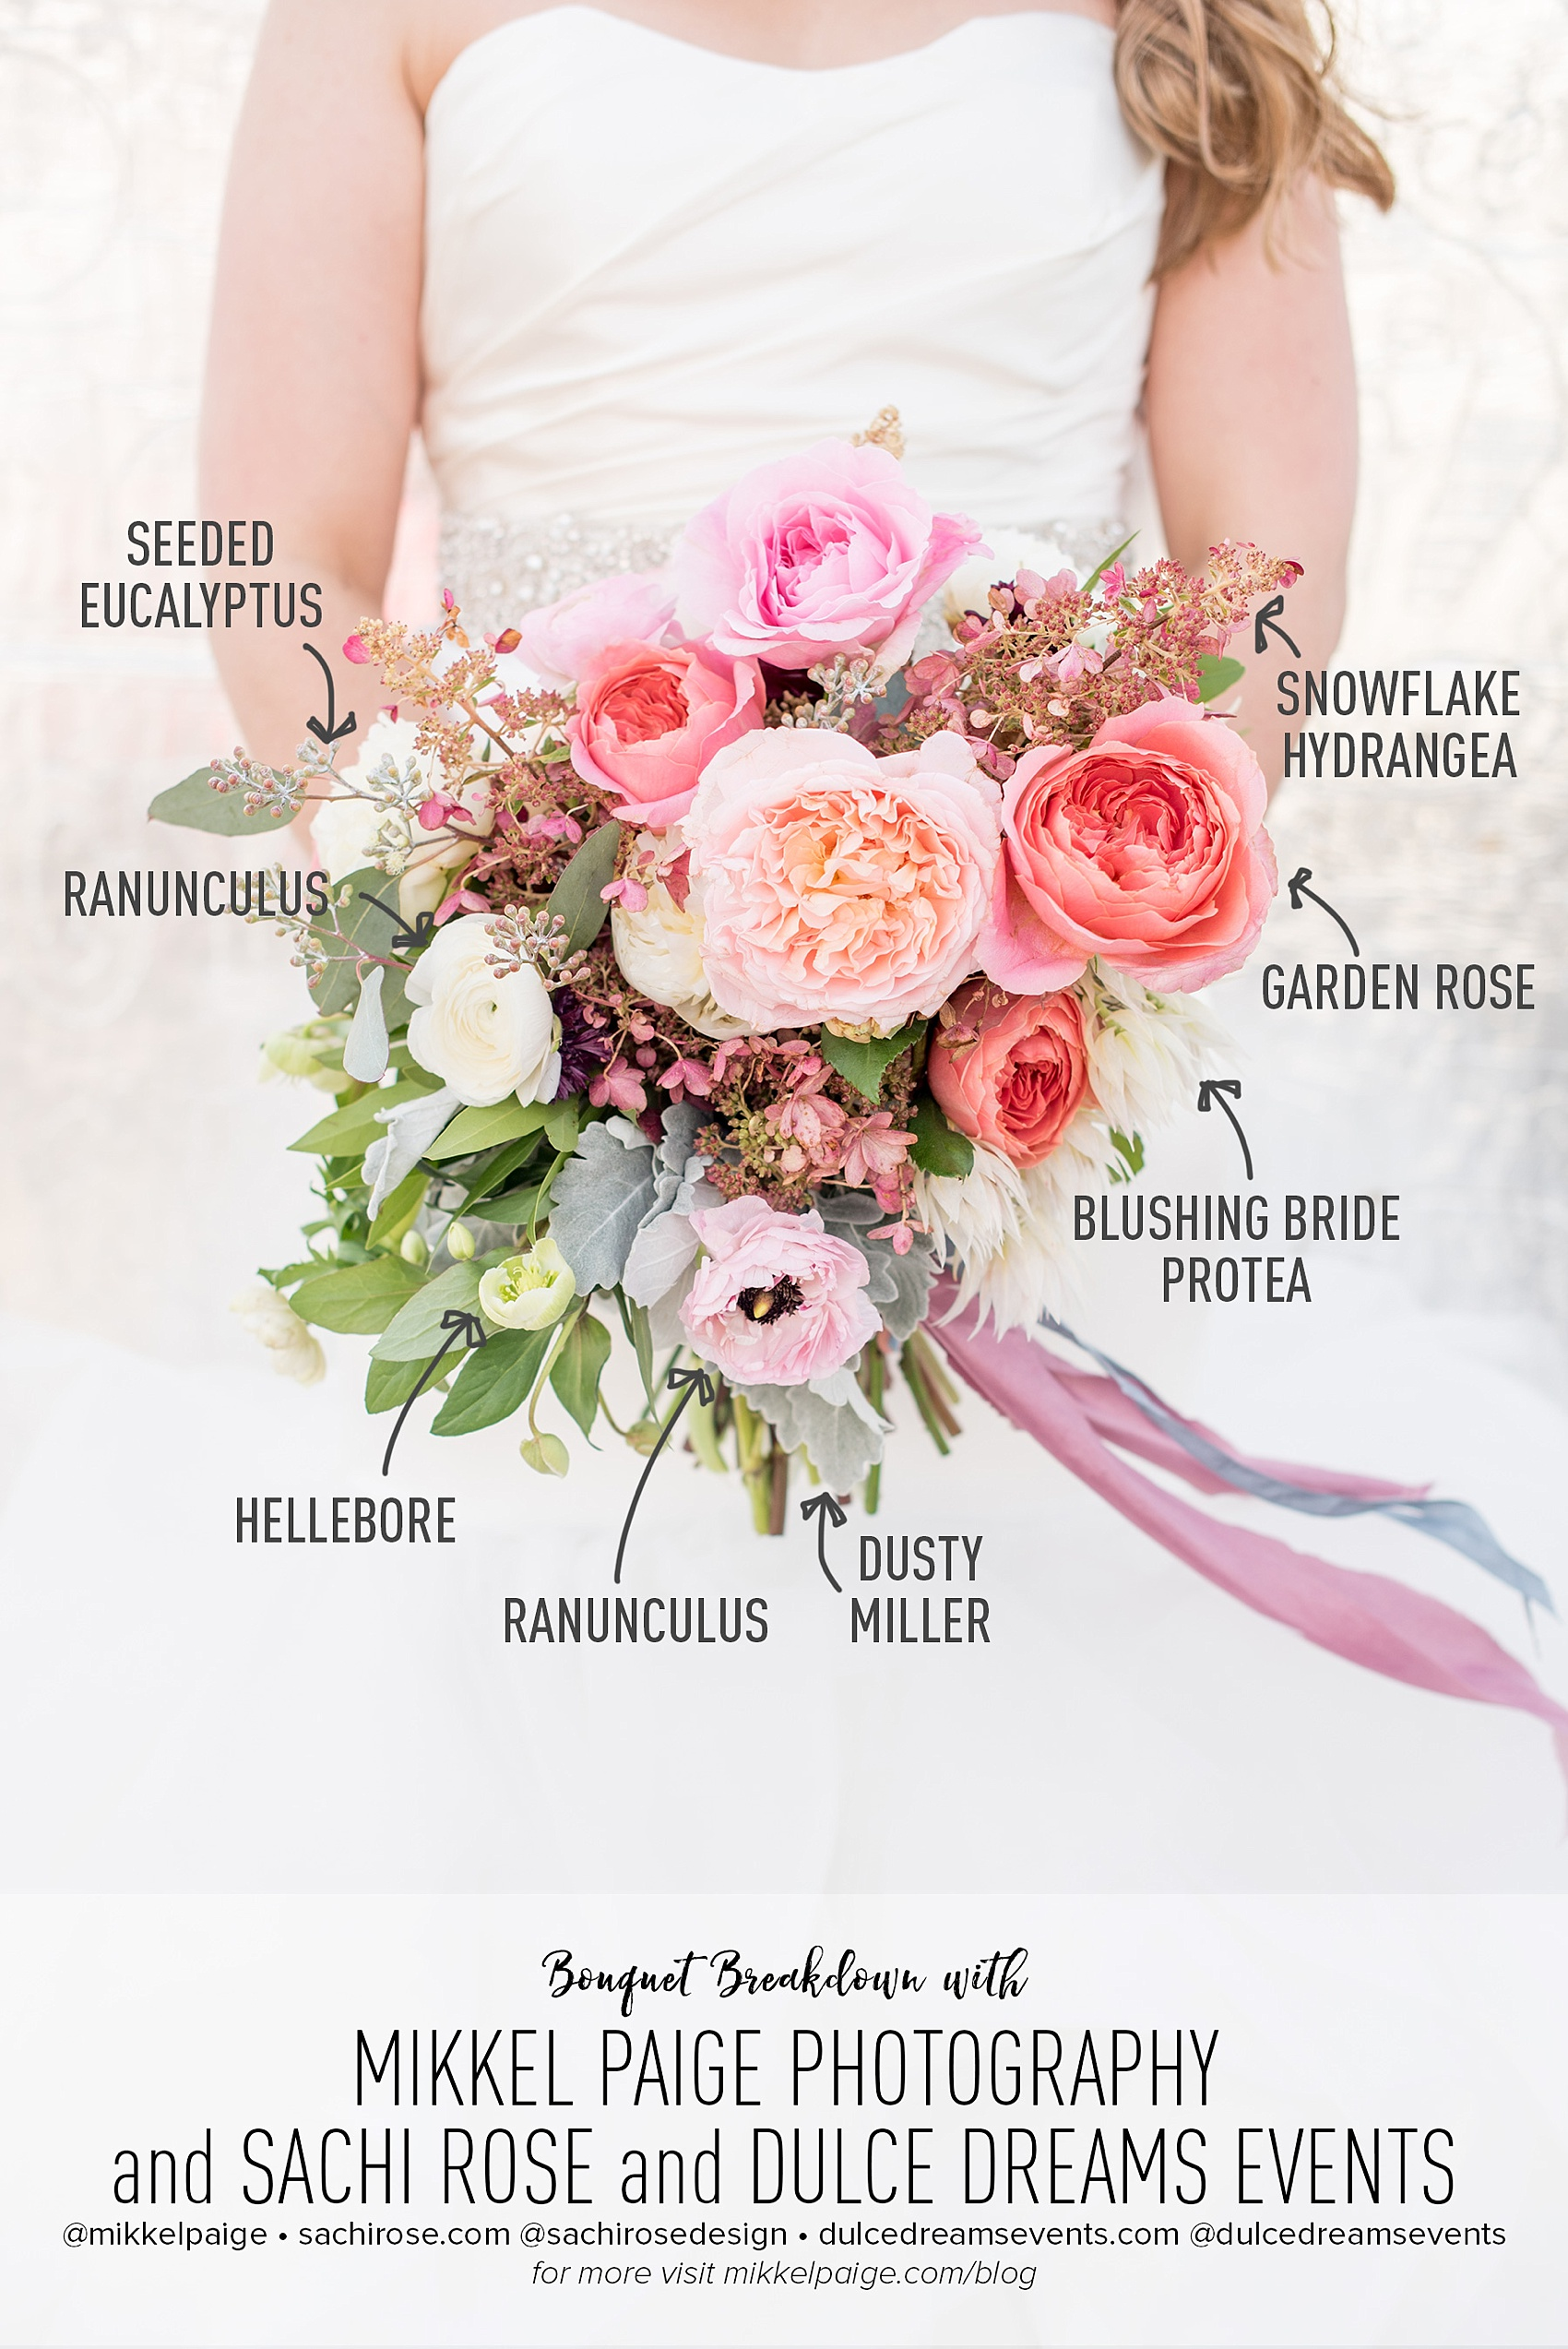 mikkel paige photography bouquet breakdown of bridal flowers with sachi rose pink hues with snowflake